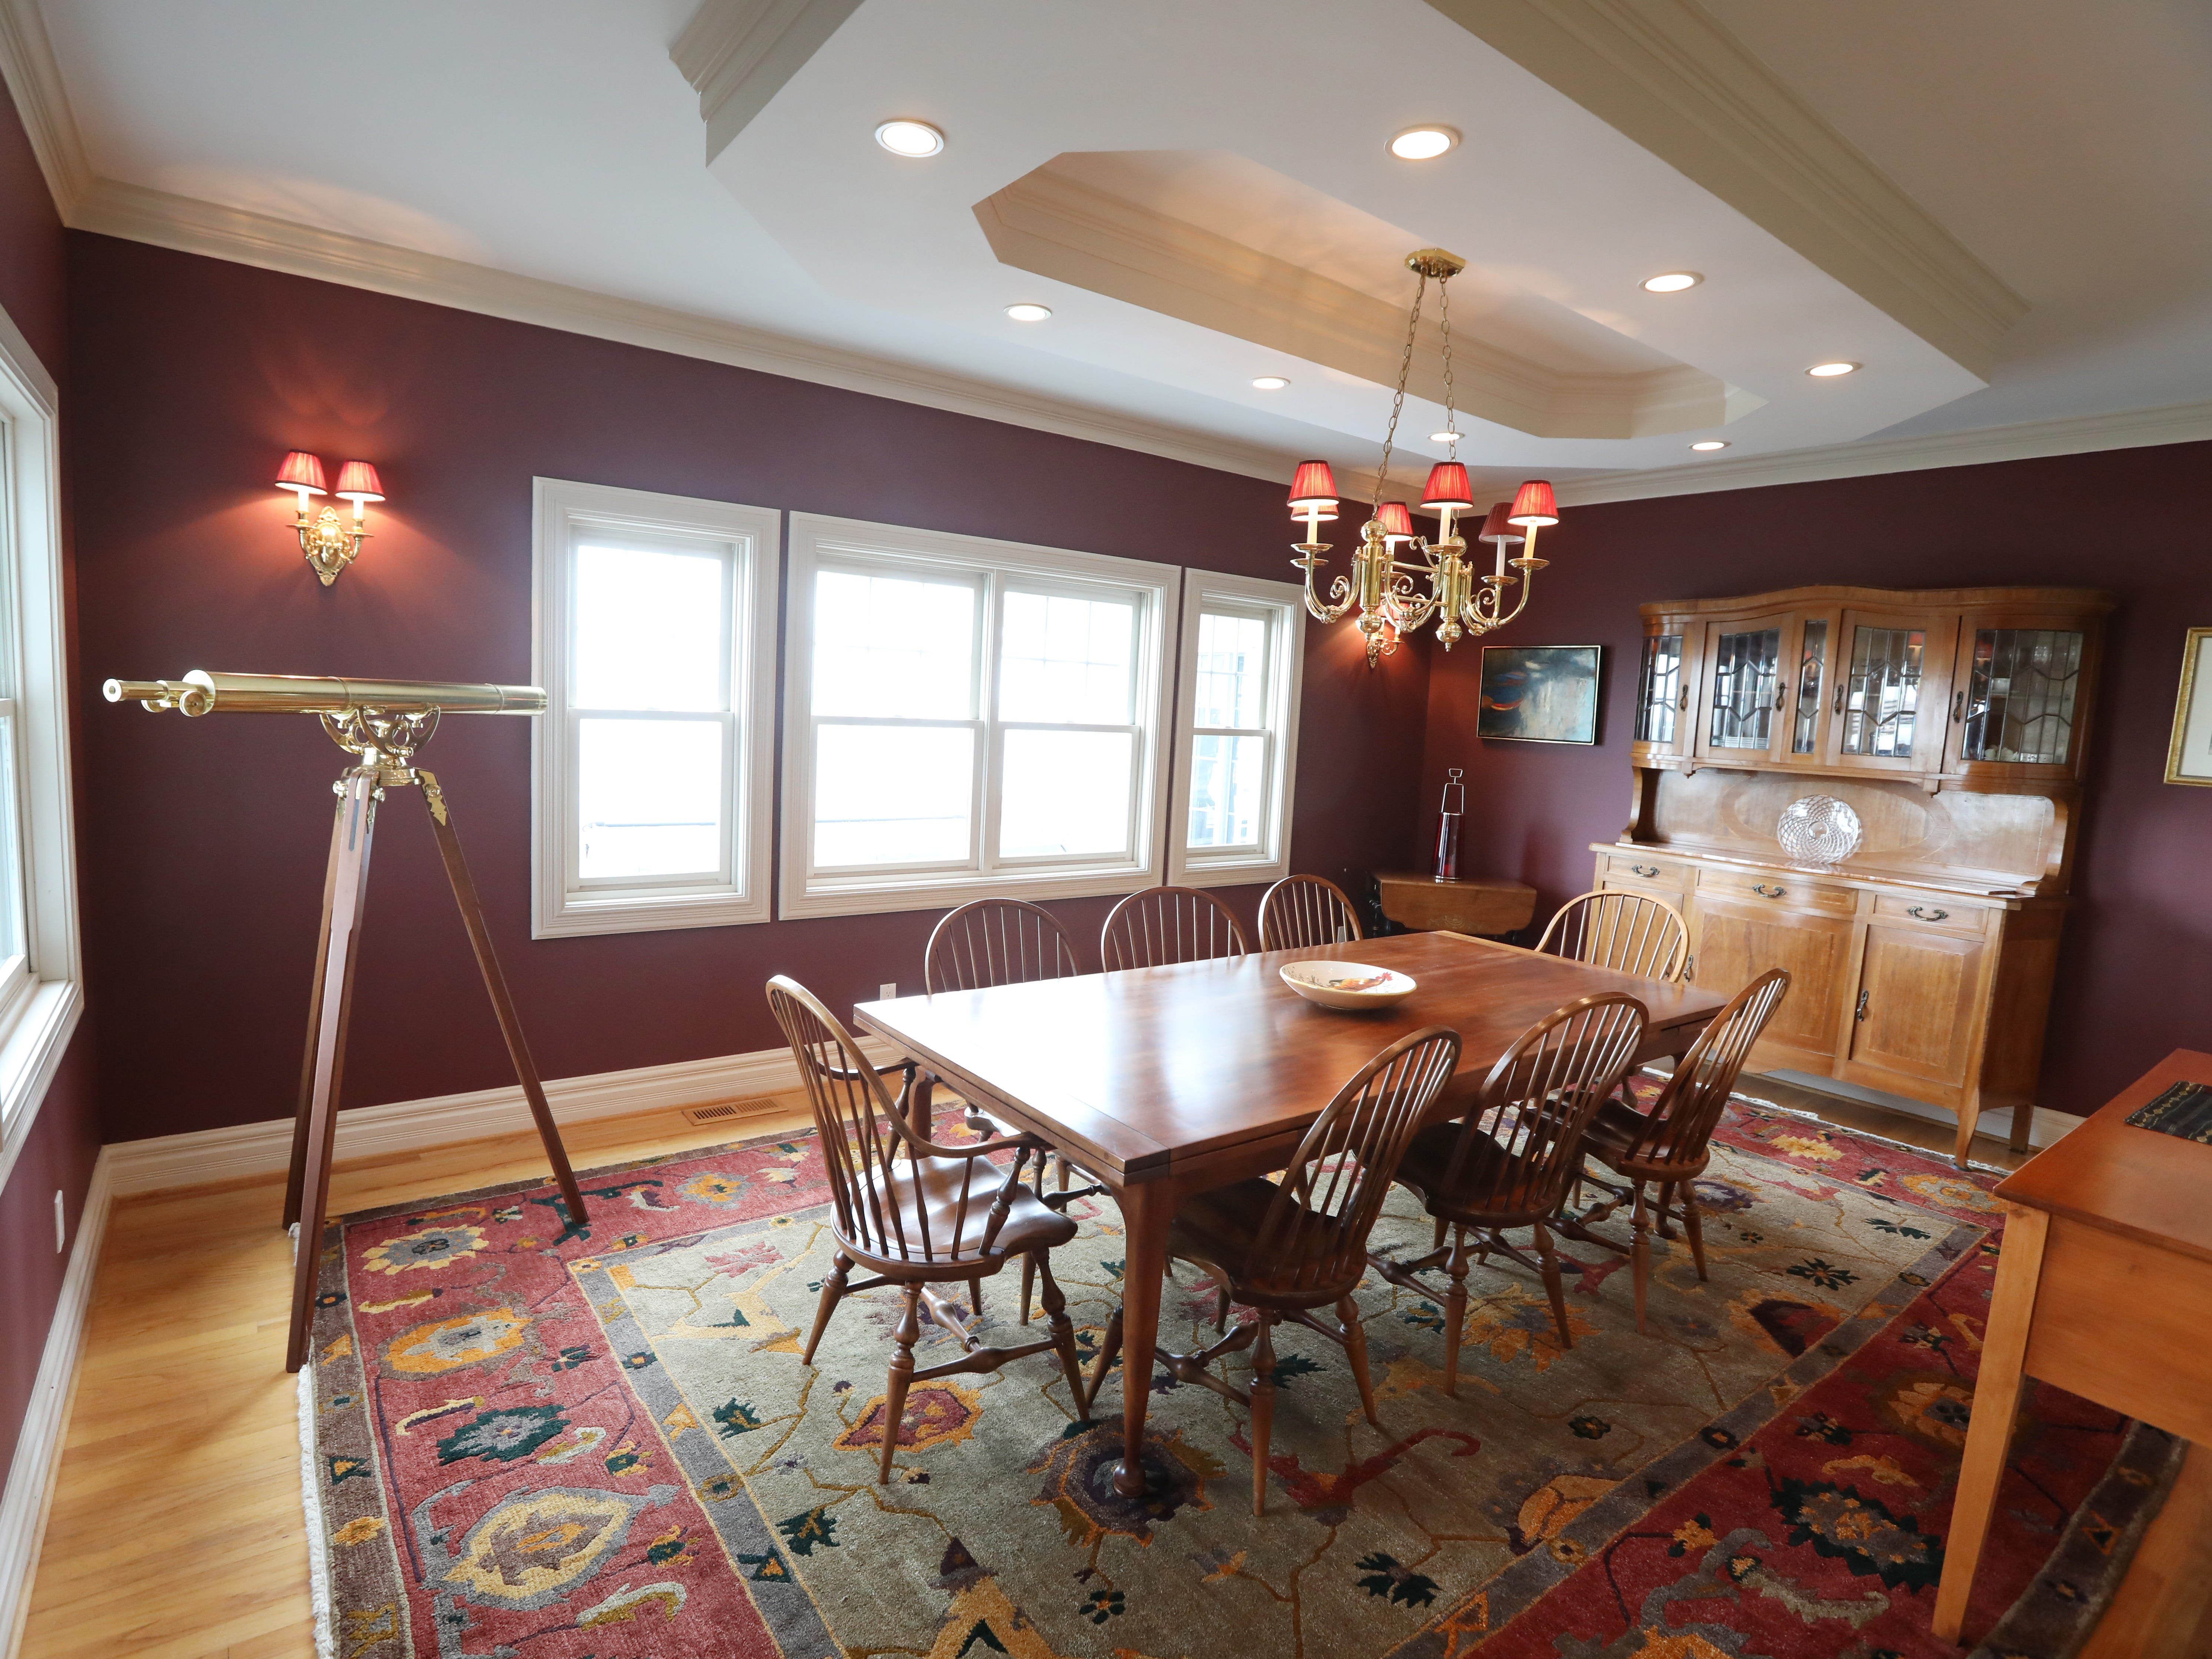 The formal dining room on the first floor.